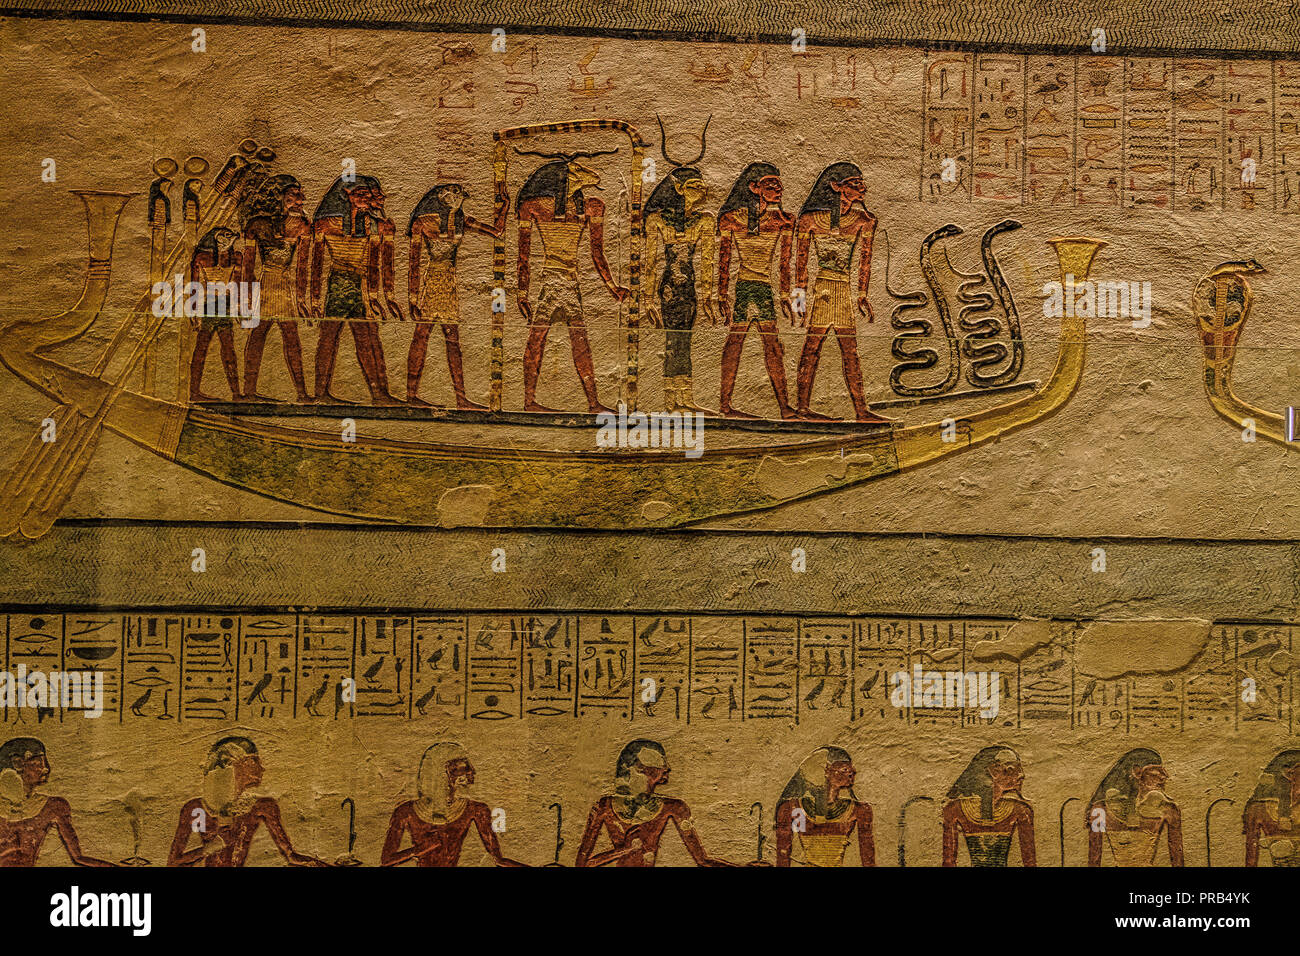 KV 6, Rameses IX burial chamber - Valley of the KIngs, Egypt - Stock Image